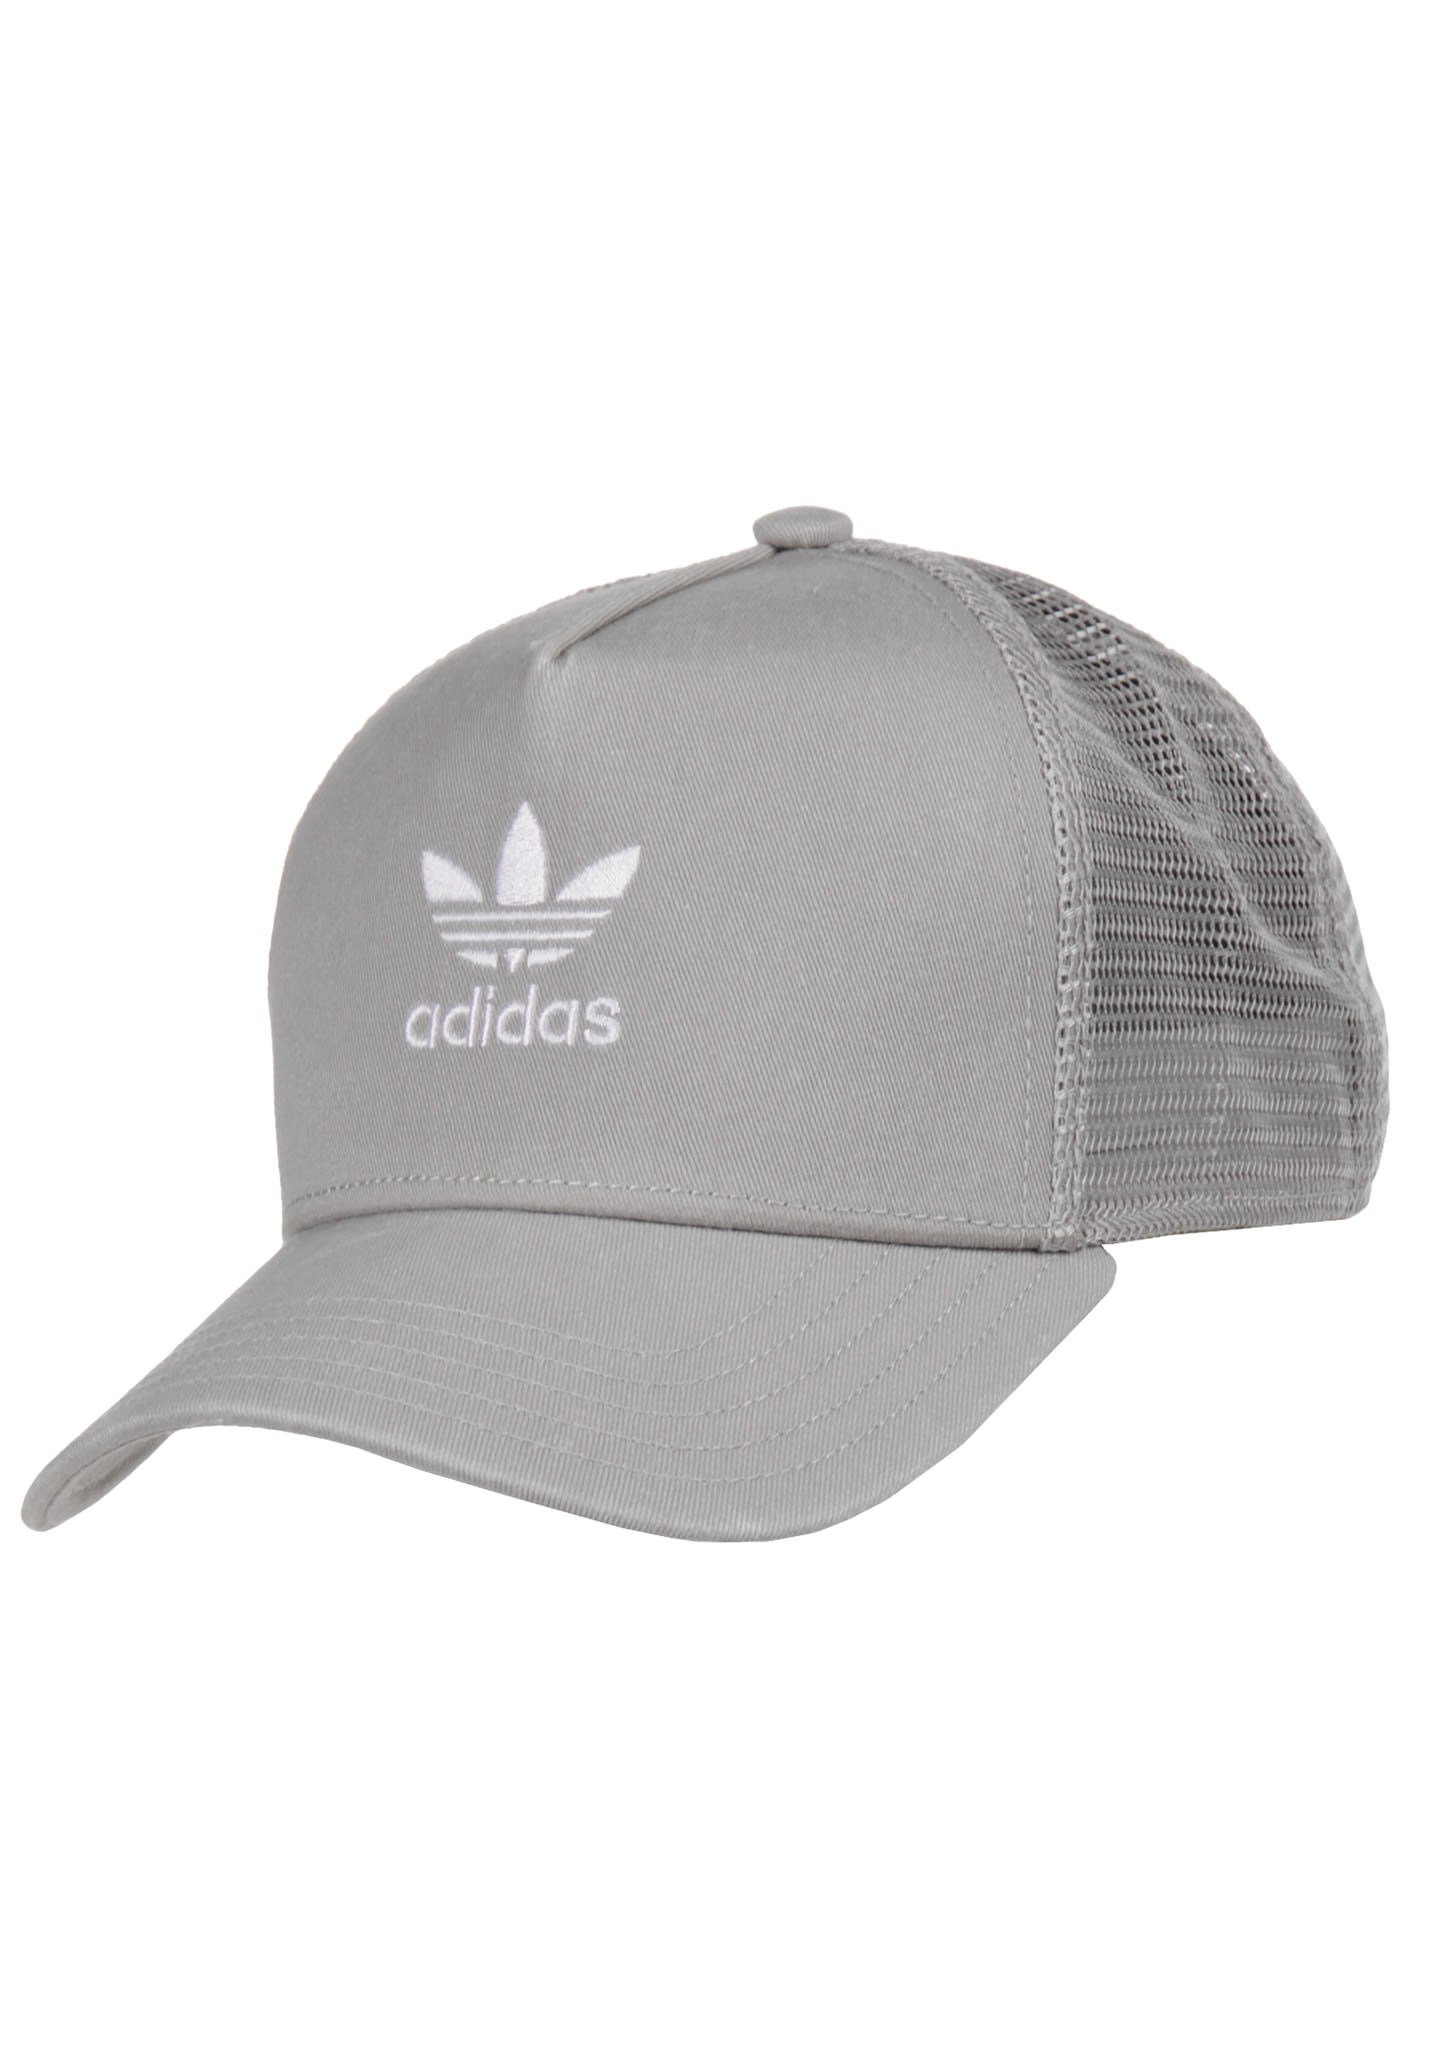 ADIDAS ORIGINALS Trefoil - Trucker Cap for Men - Grey - Planet Sports 9793e1b2fa8